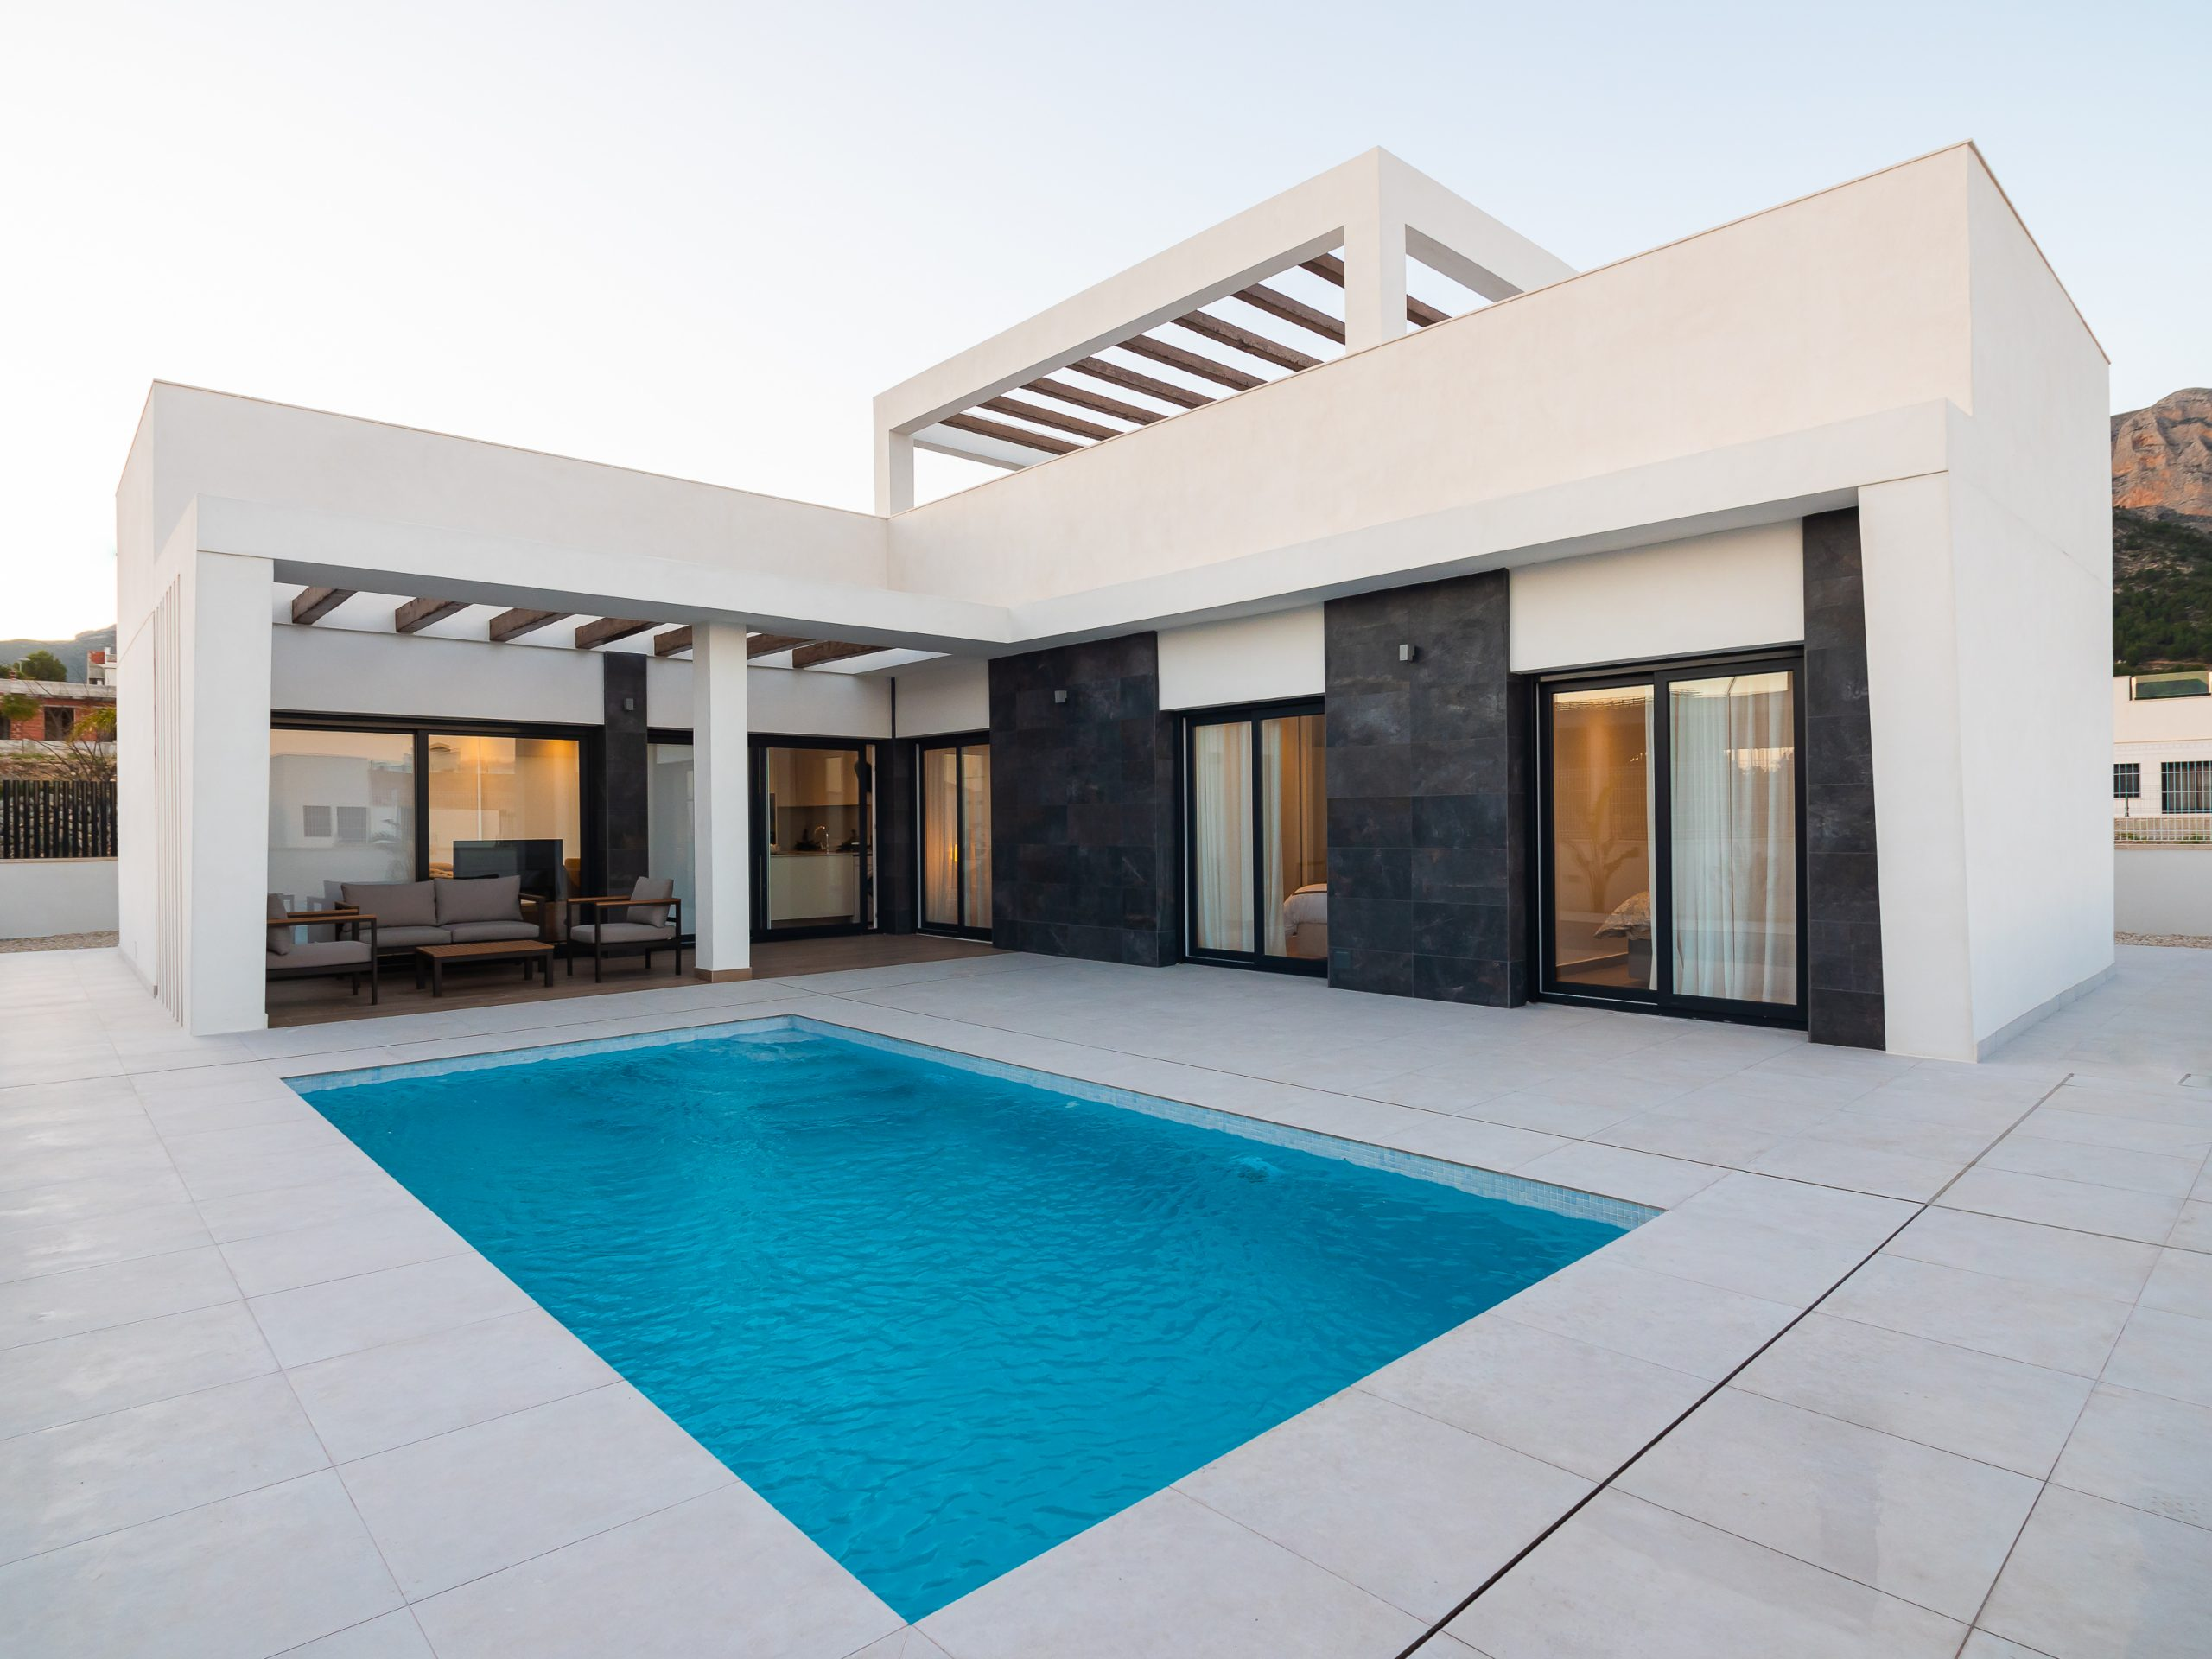 Modern new villa with pool in Polop close to Villaitana 5* Golf resort